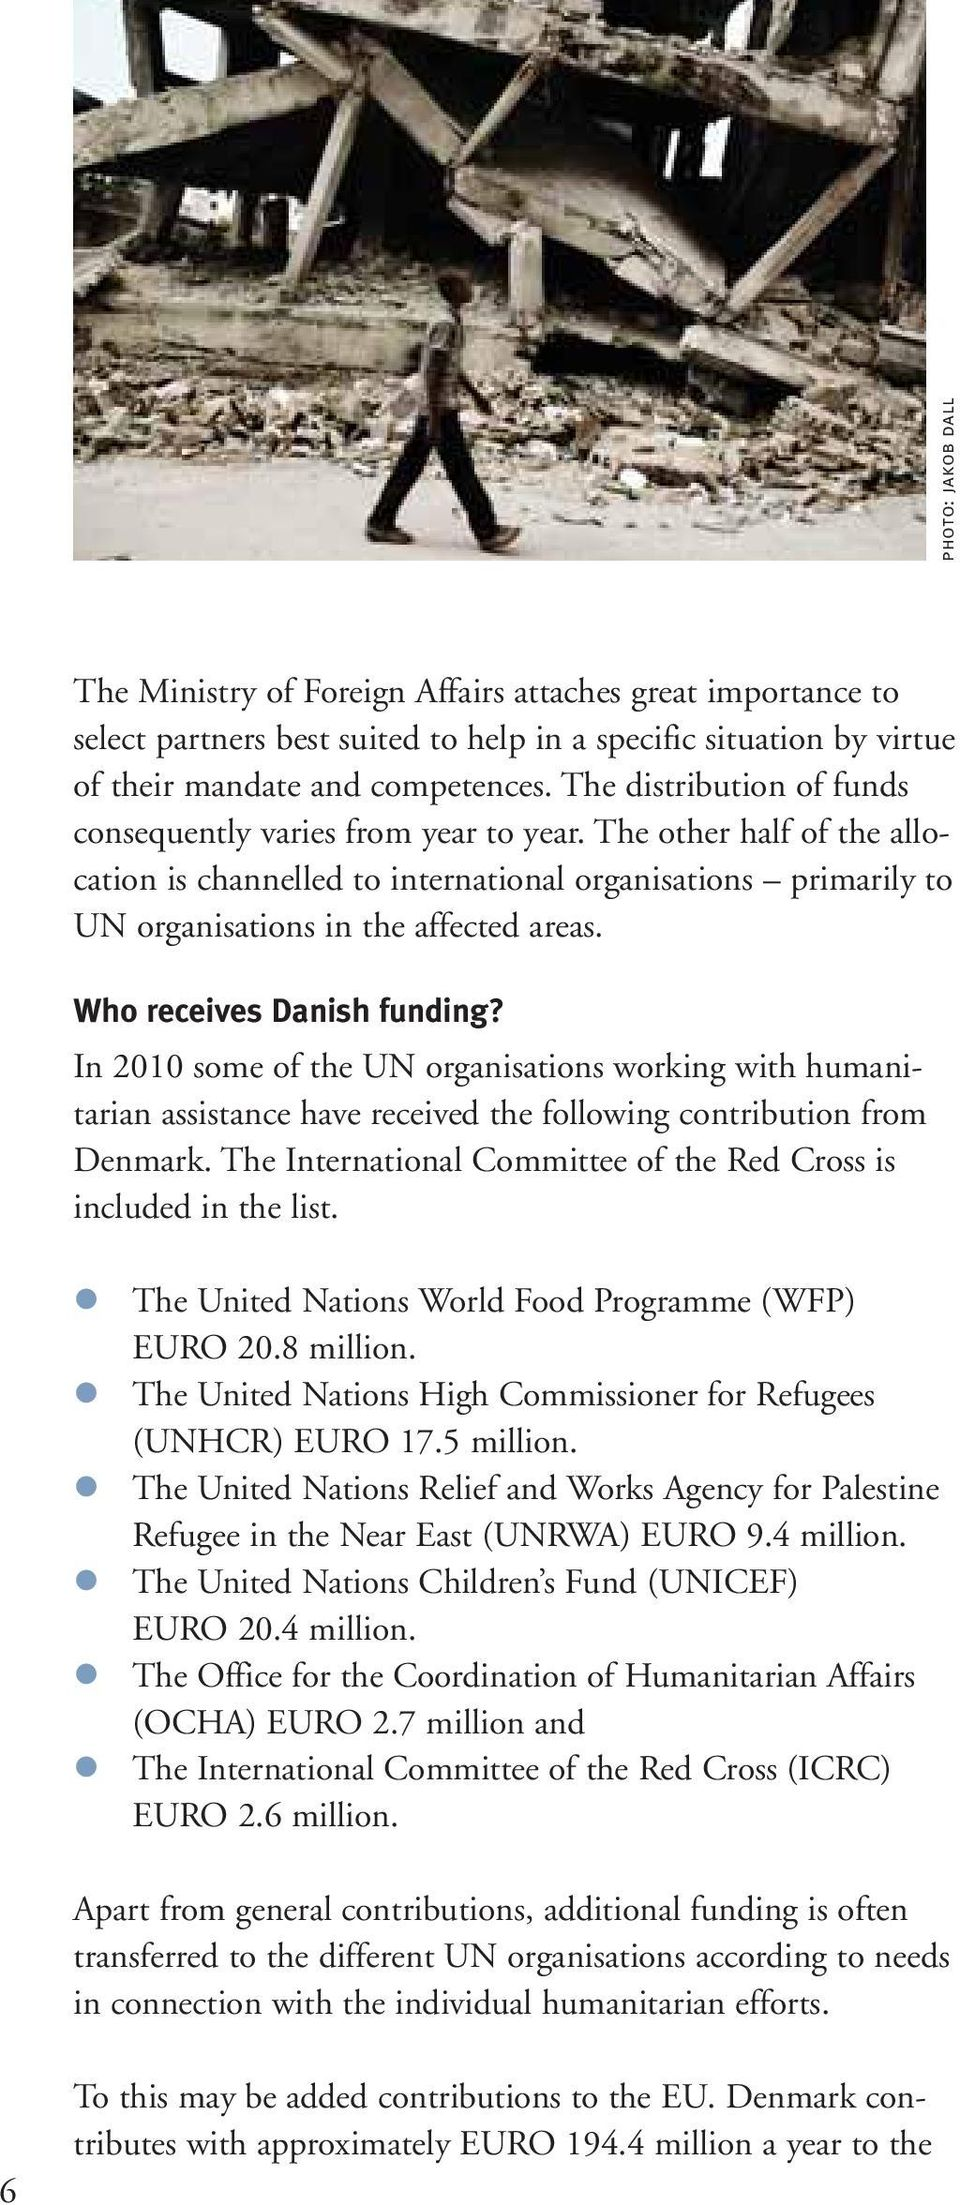 In 2010 some of the UN organisations working with humanitarian assistance have received the following contribution from Denmark. The International Committee of the Red Cross is included in the list.